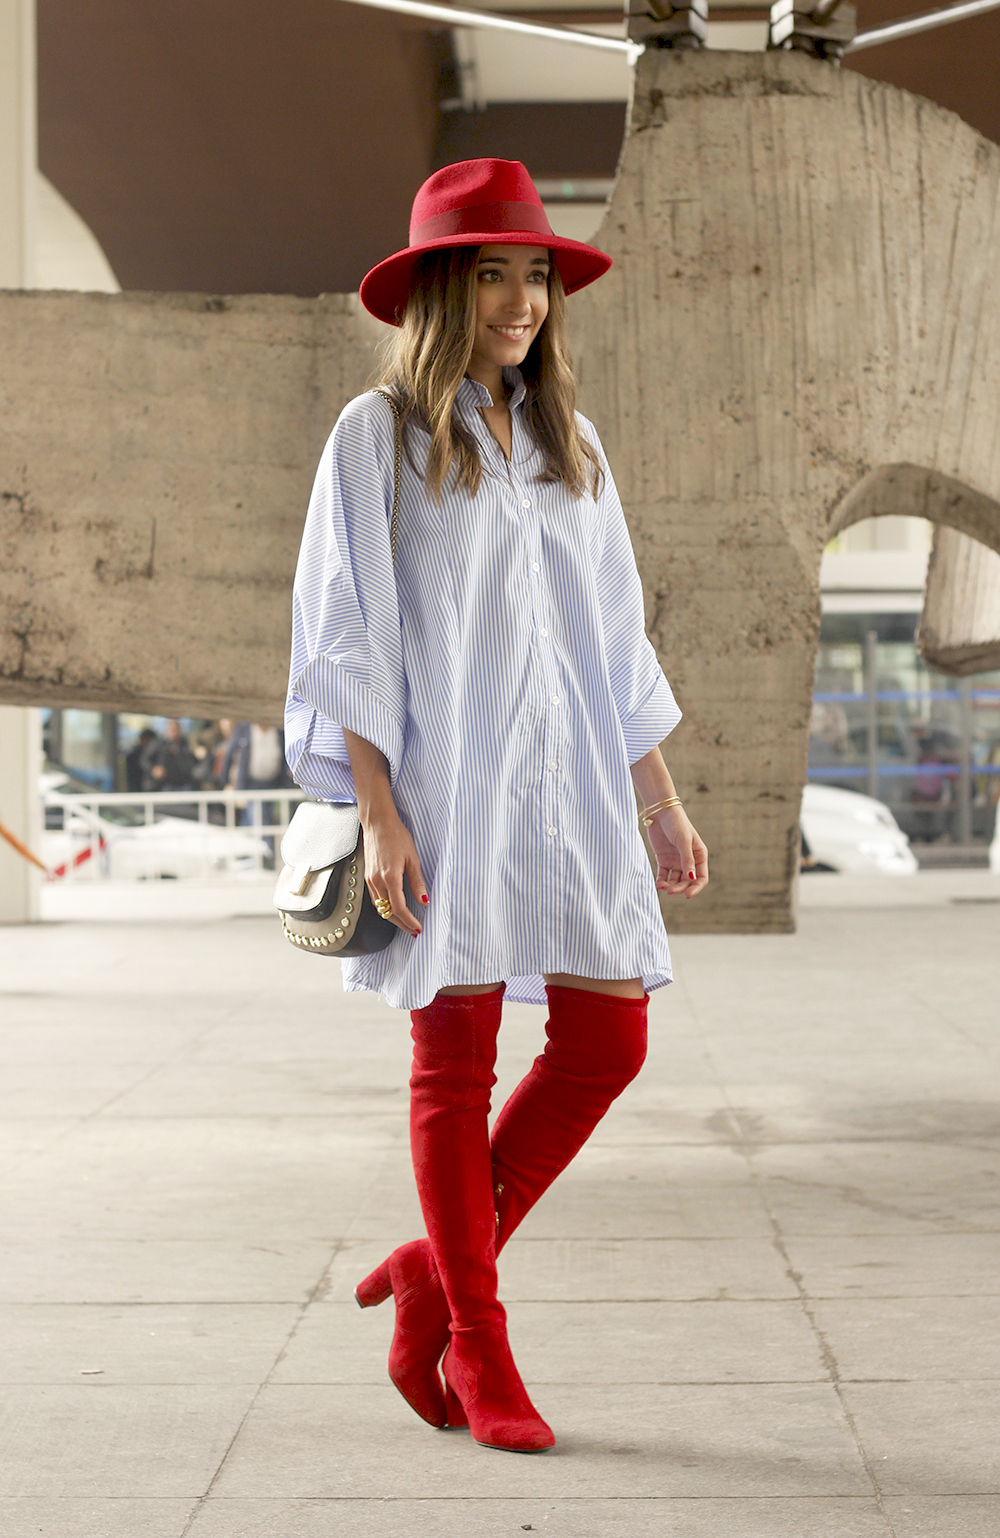 striped dress red over the knee boots red hat accessories fashion outfit style autumn10